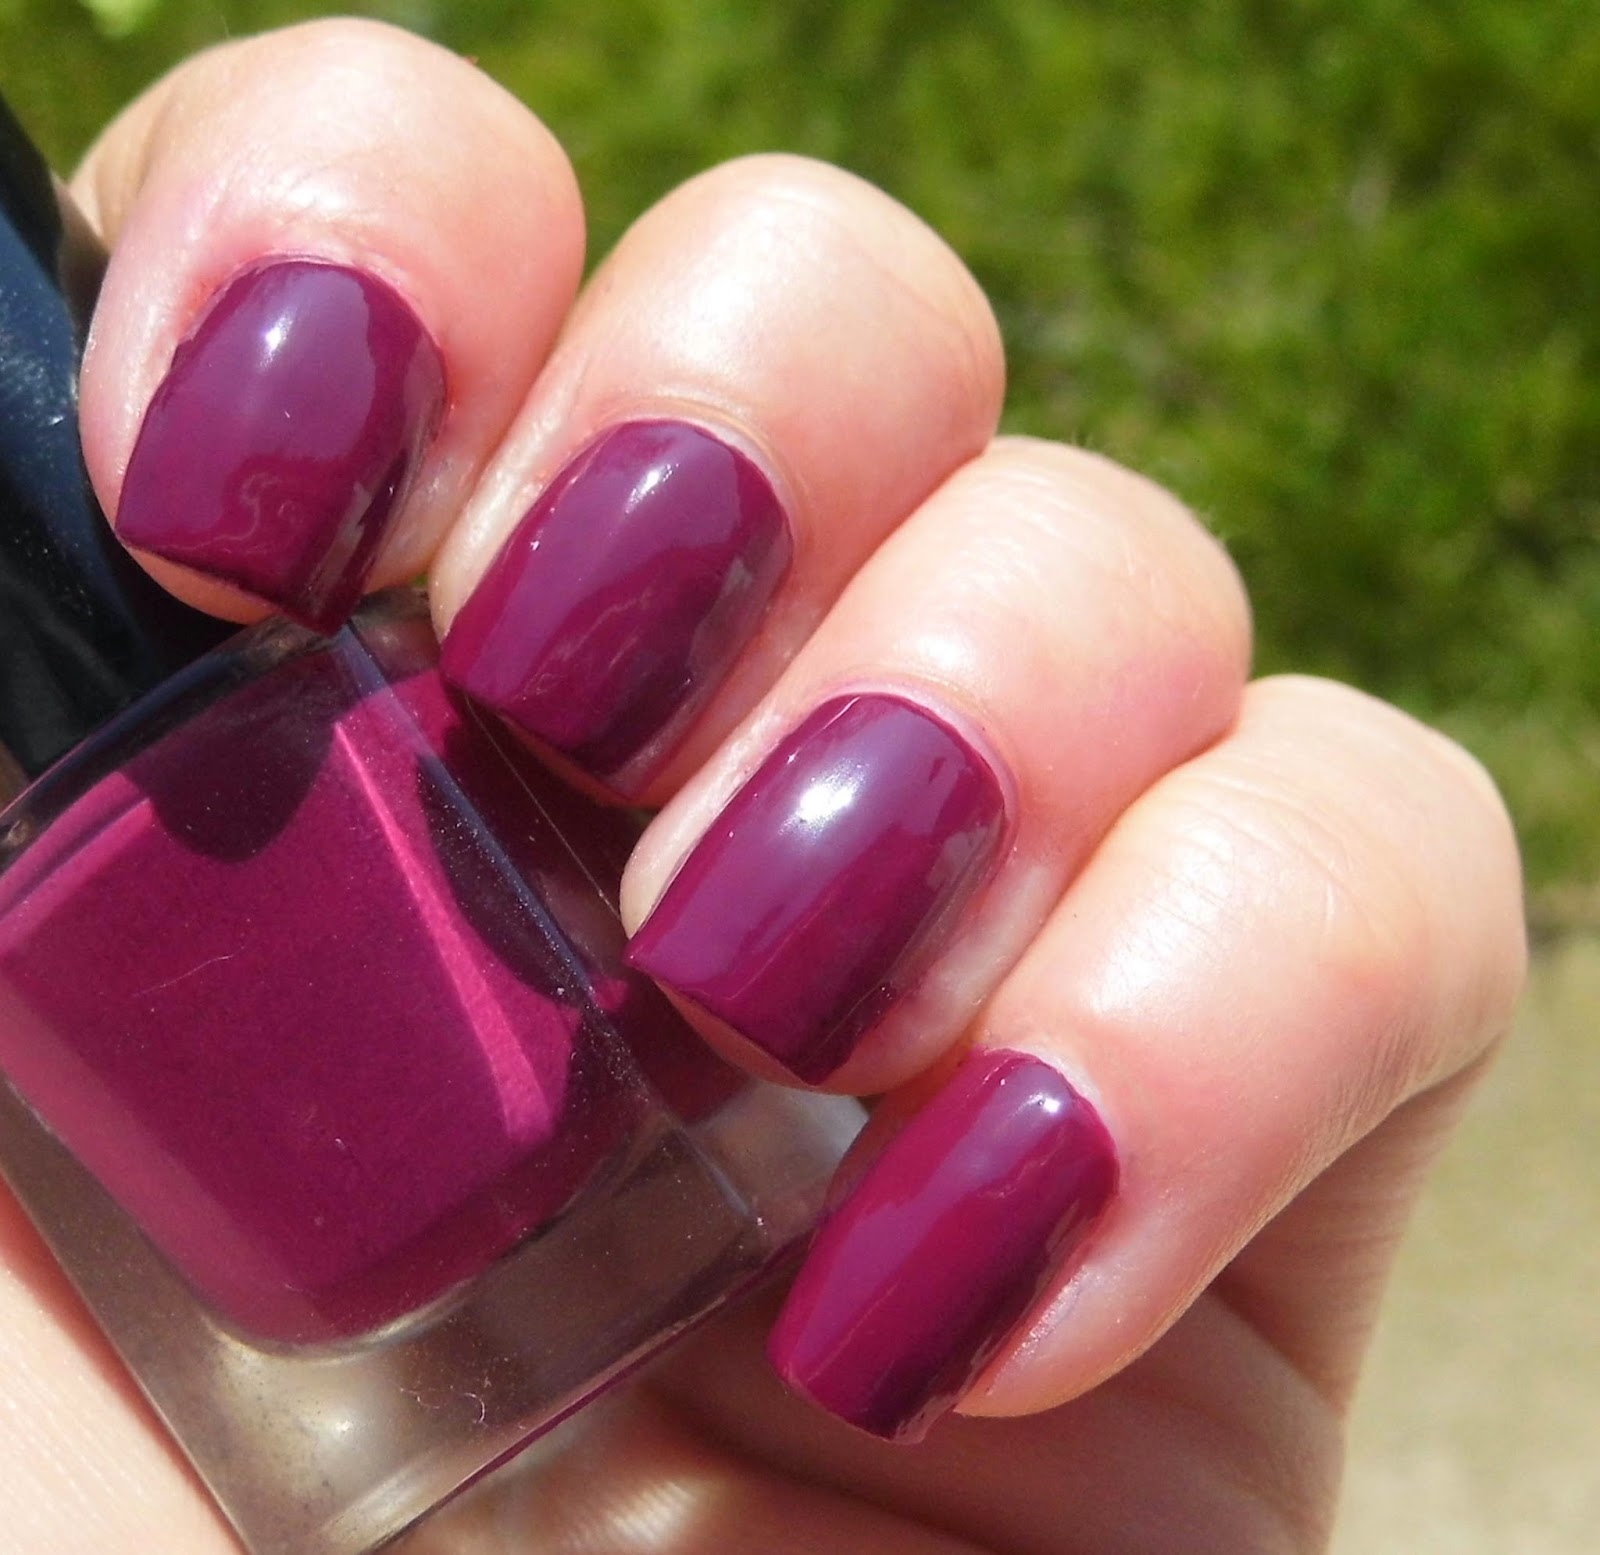 maxfactor-maxeffect-intense-plum-nail-polish-picture-swatch